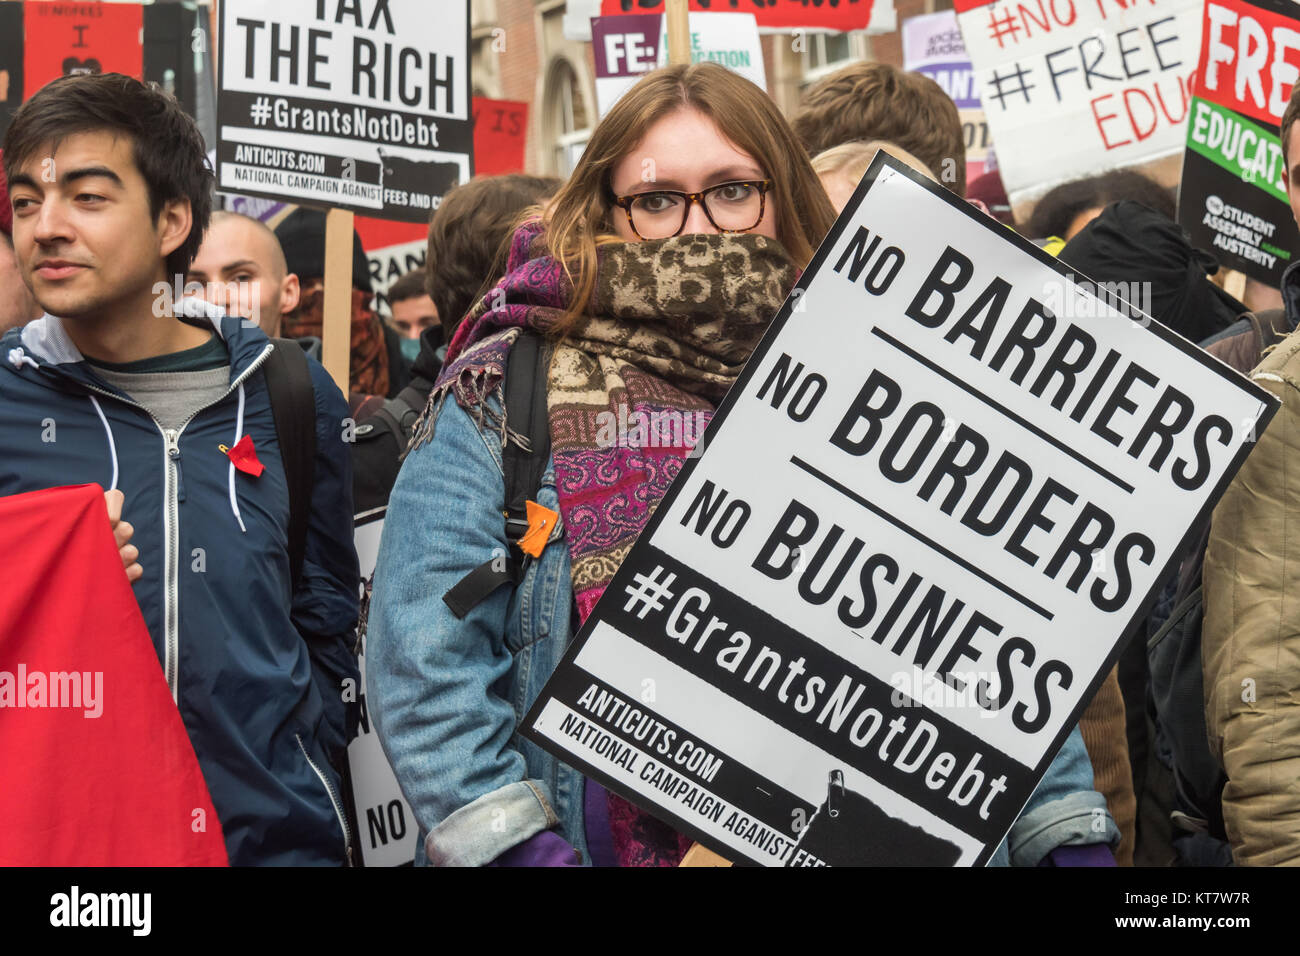 Marchers at the start of the NCAFC Student march for free education with a placard 'No Barriers, No Borders, - Stock Image